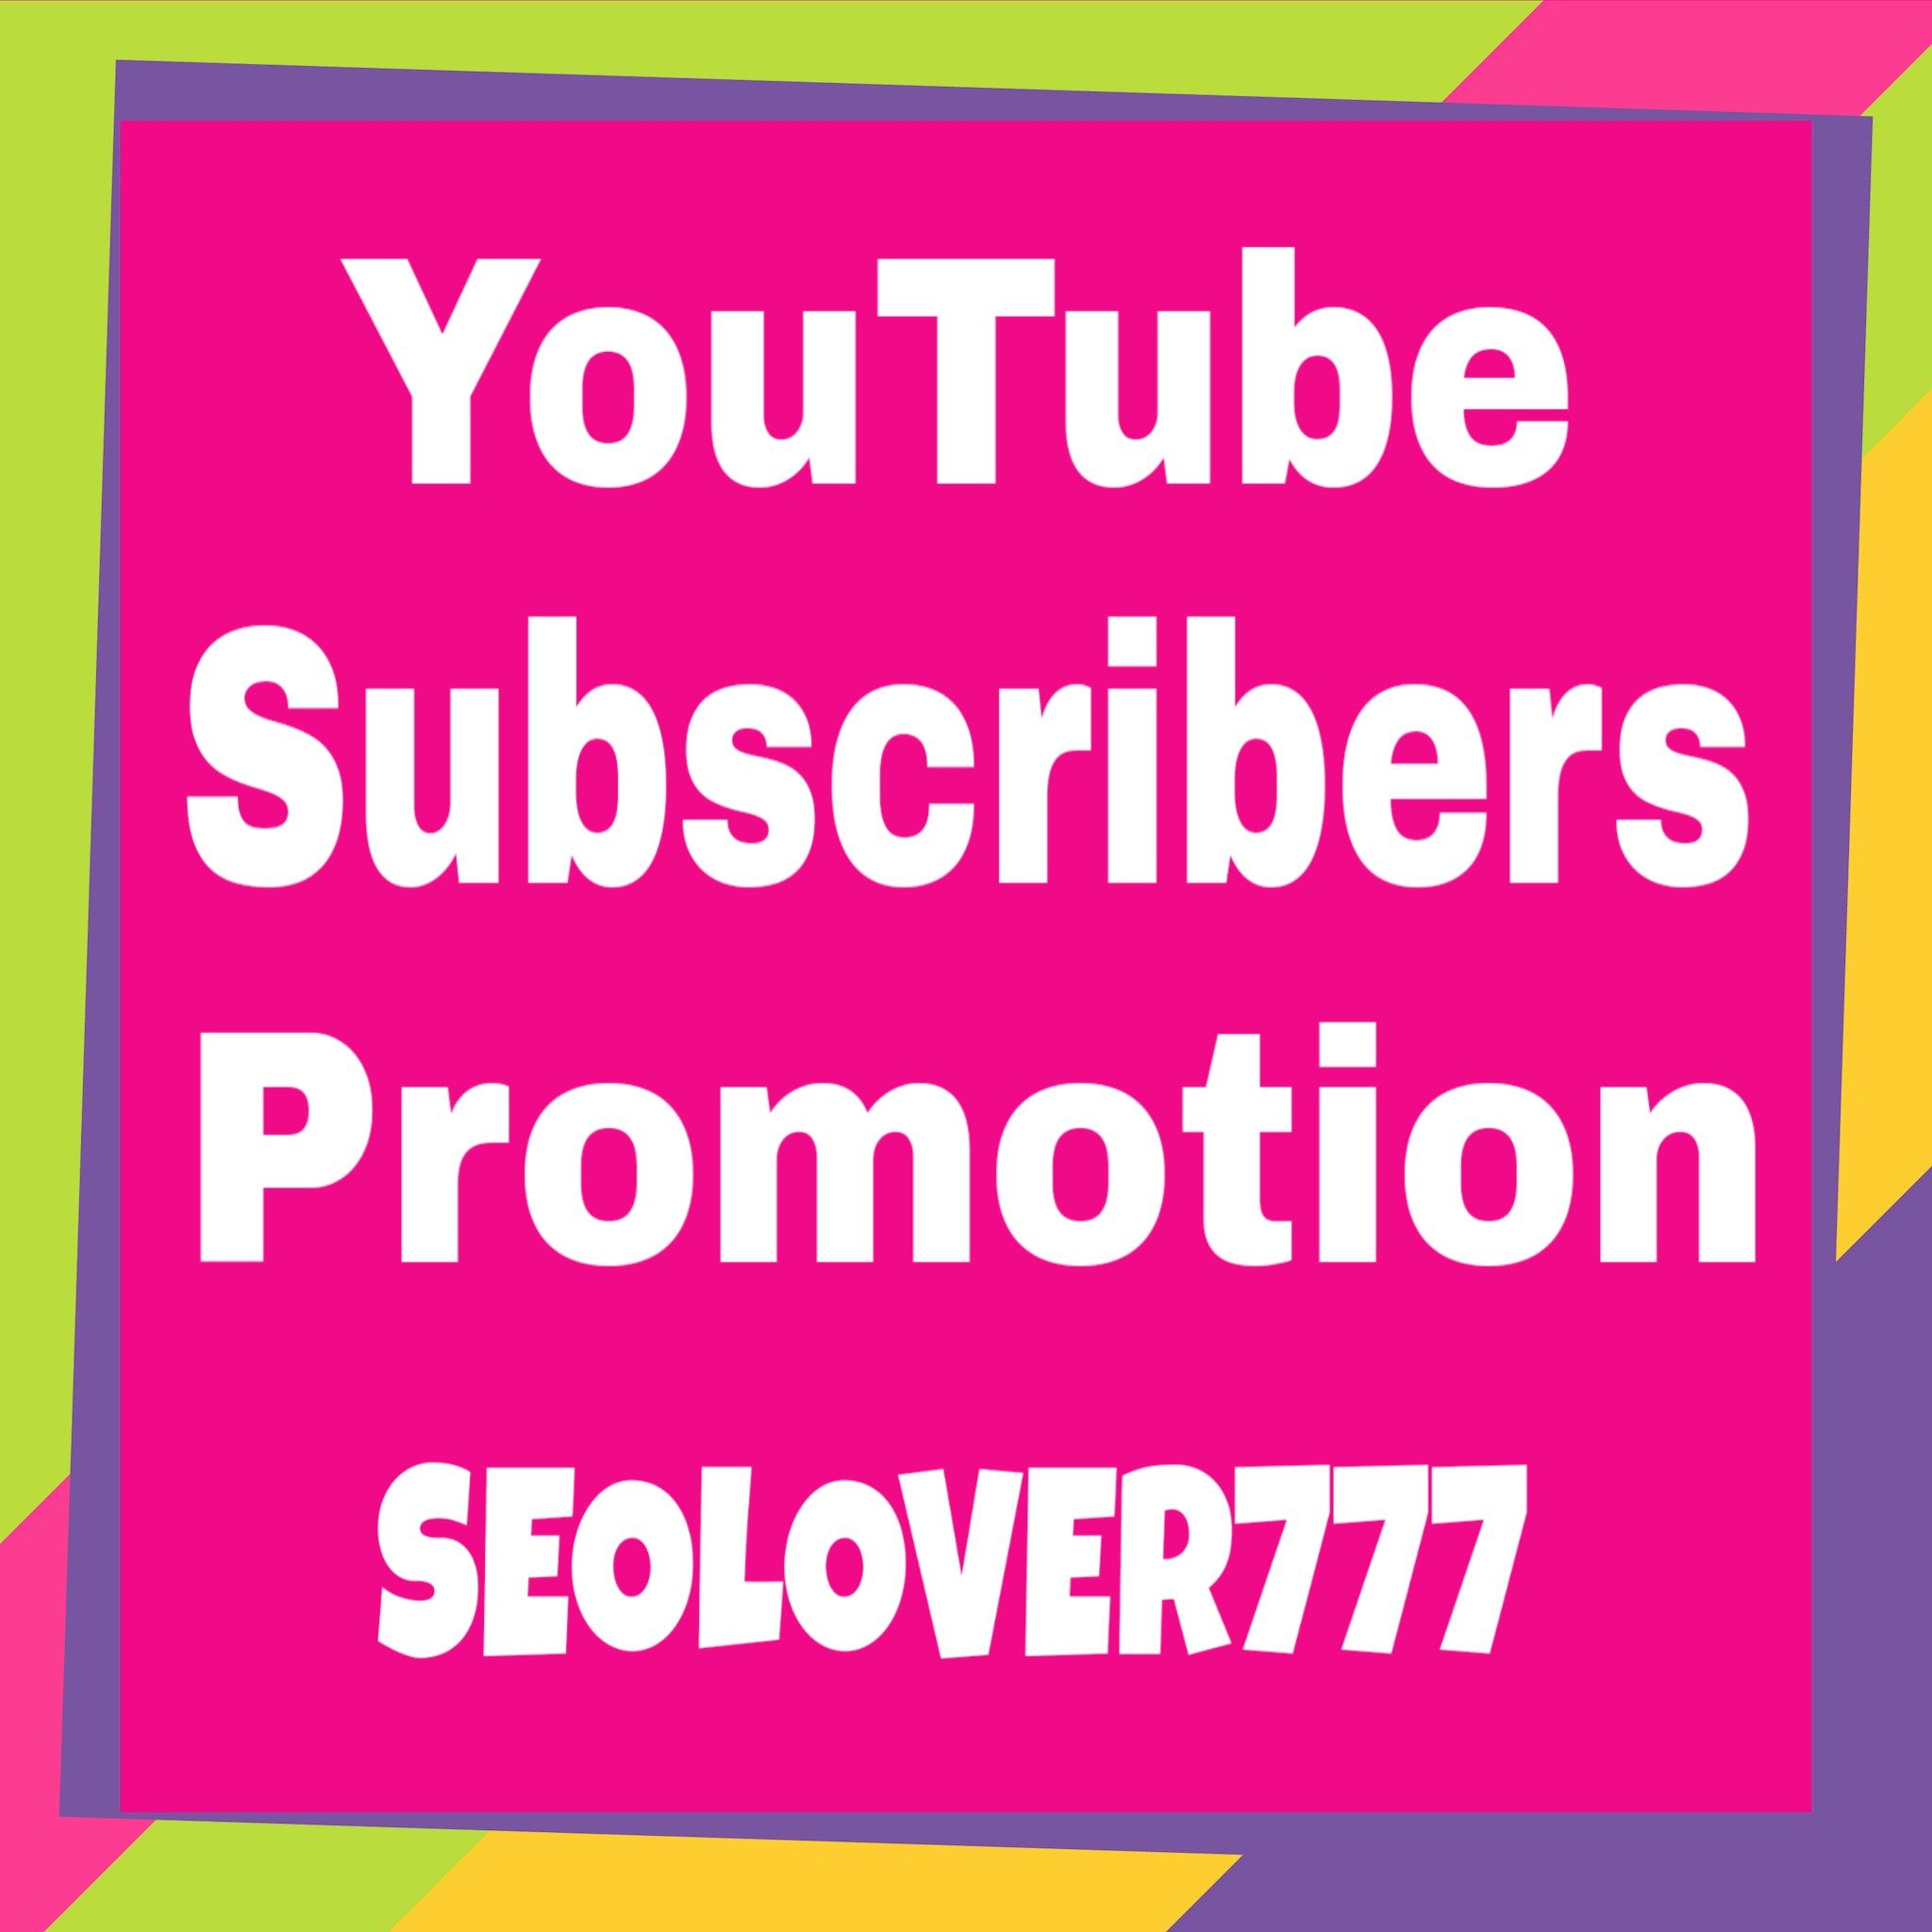 YouTube-Promotion-Via-Real-Users-Only